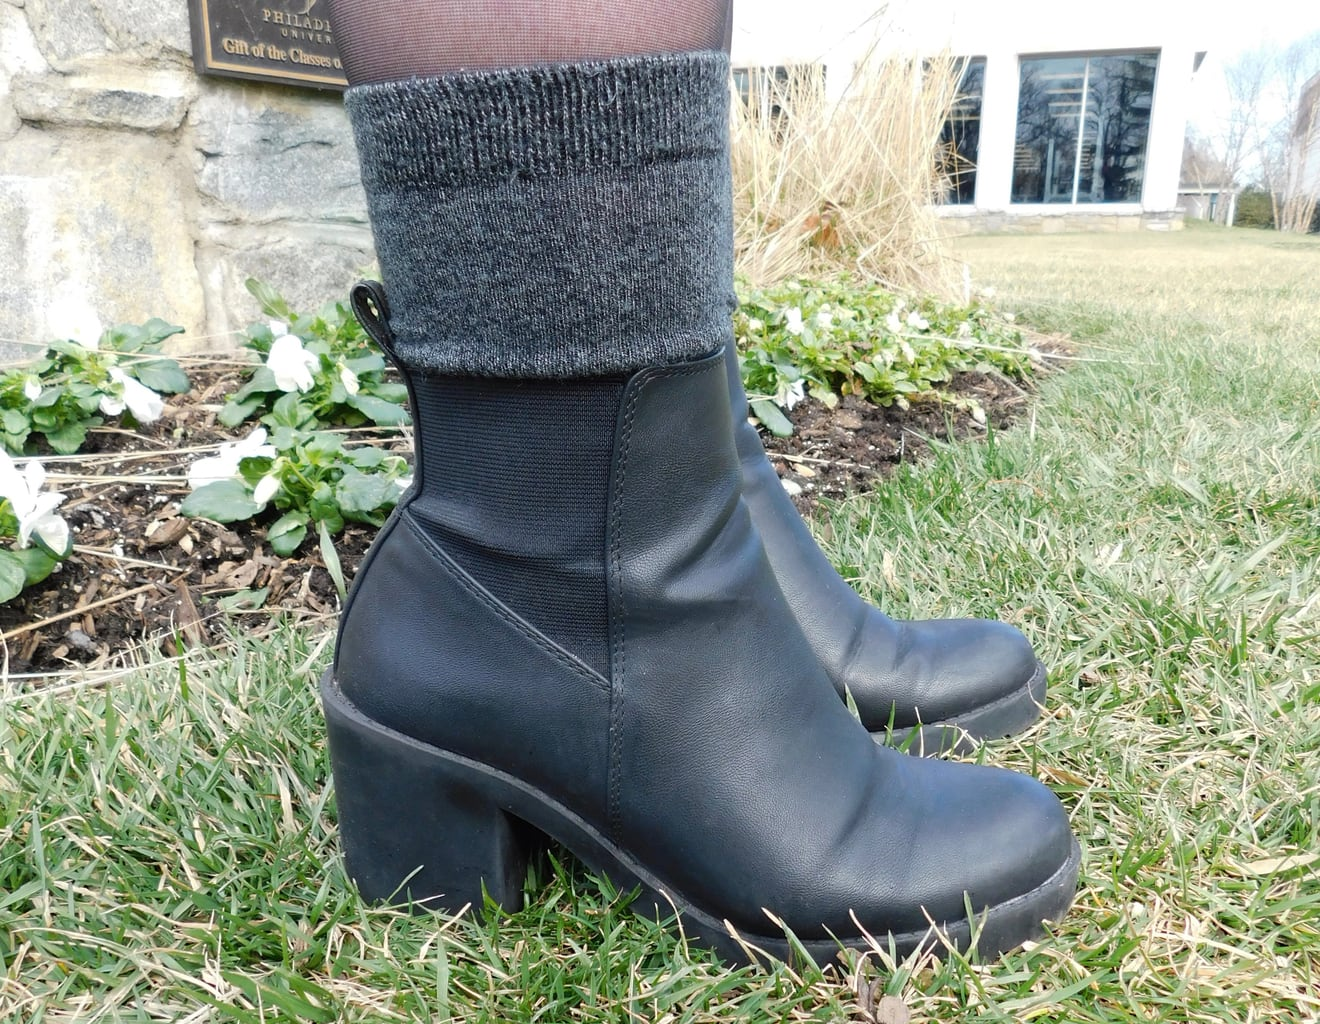 These black chunky-heeled booties with elastic detailing are accented with a pair of cozy grey boot socks.